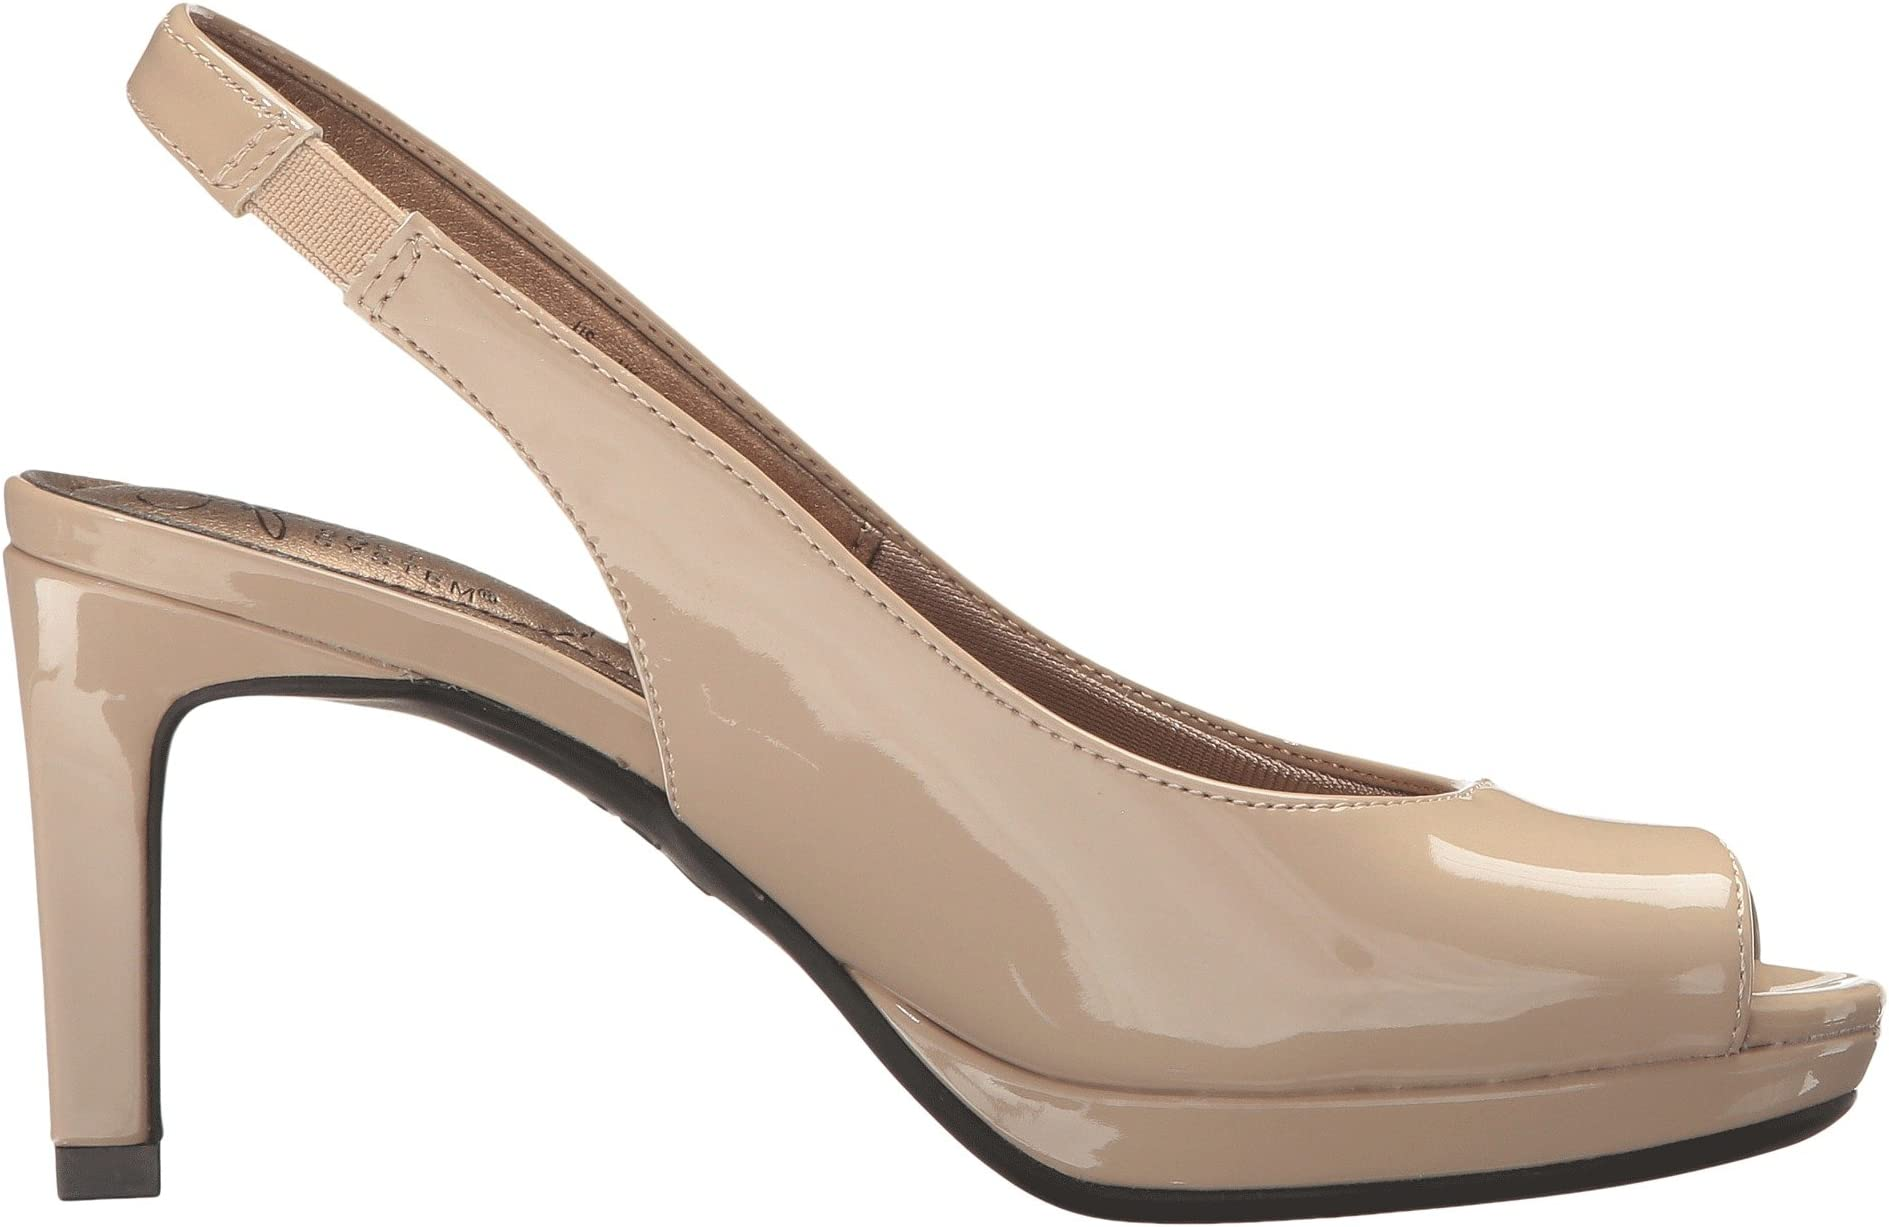 LifeStride Invest   Women's shoes   2020 Newest